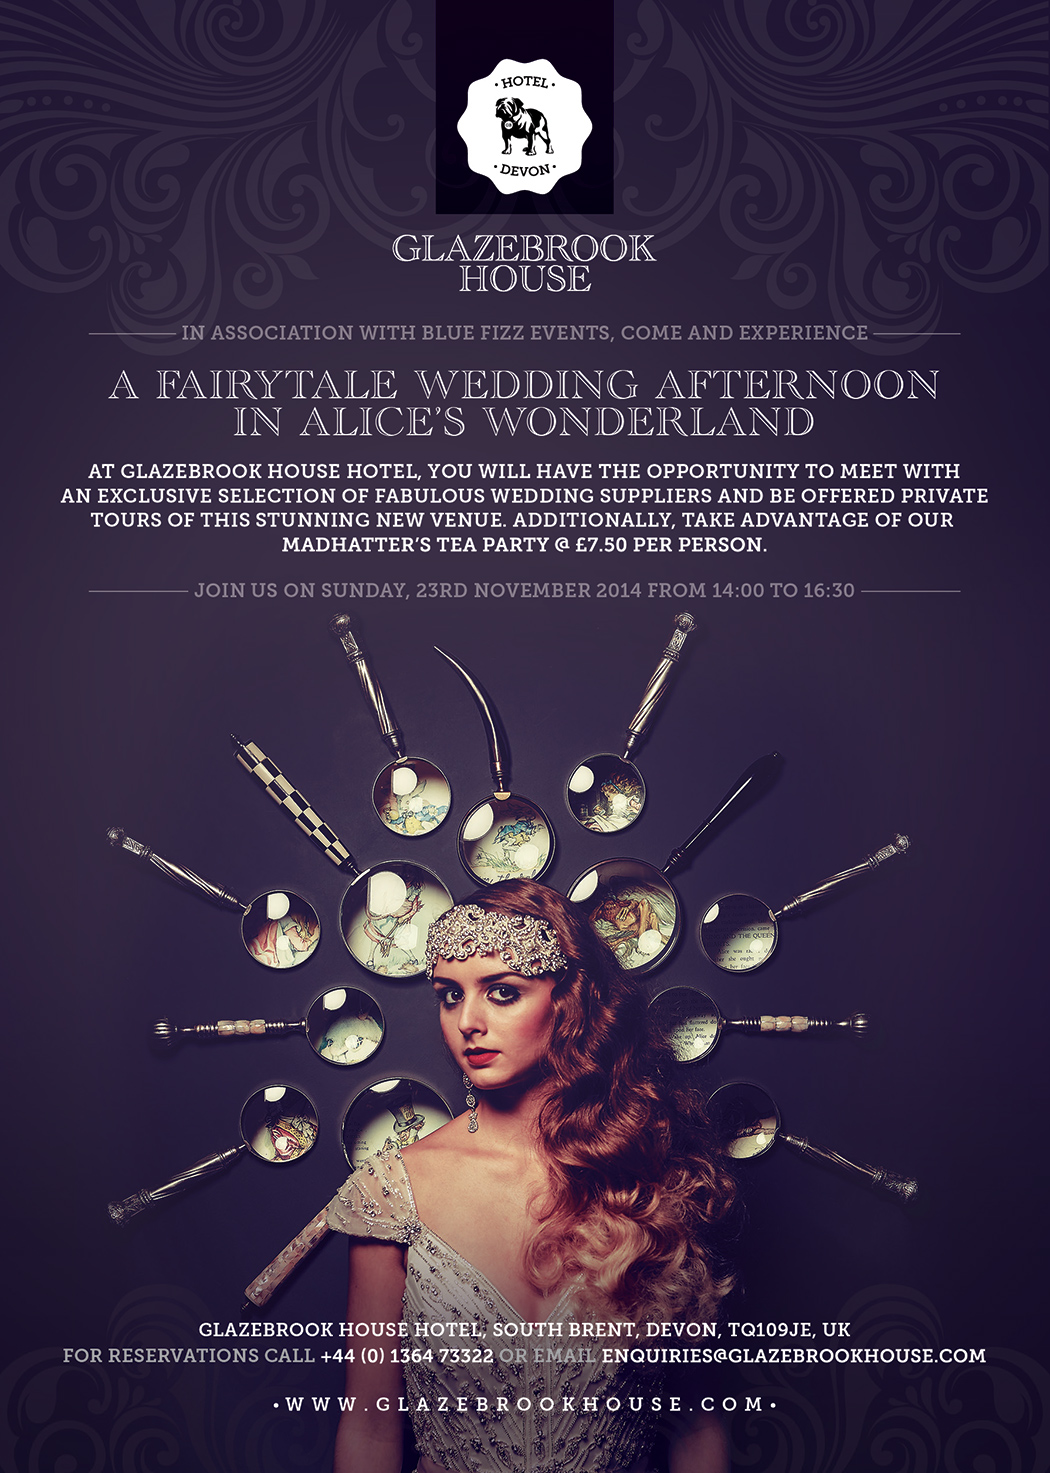 wedding-venues-in-devon-glazebrook-house-hotel-coco-wedding-venues-luxury-boutique-hotel-events-poster